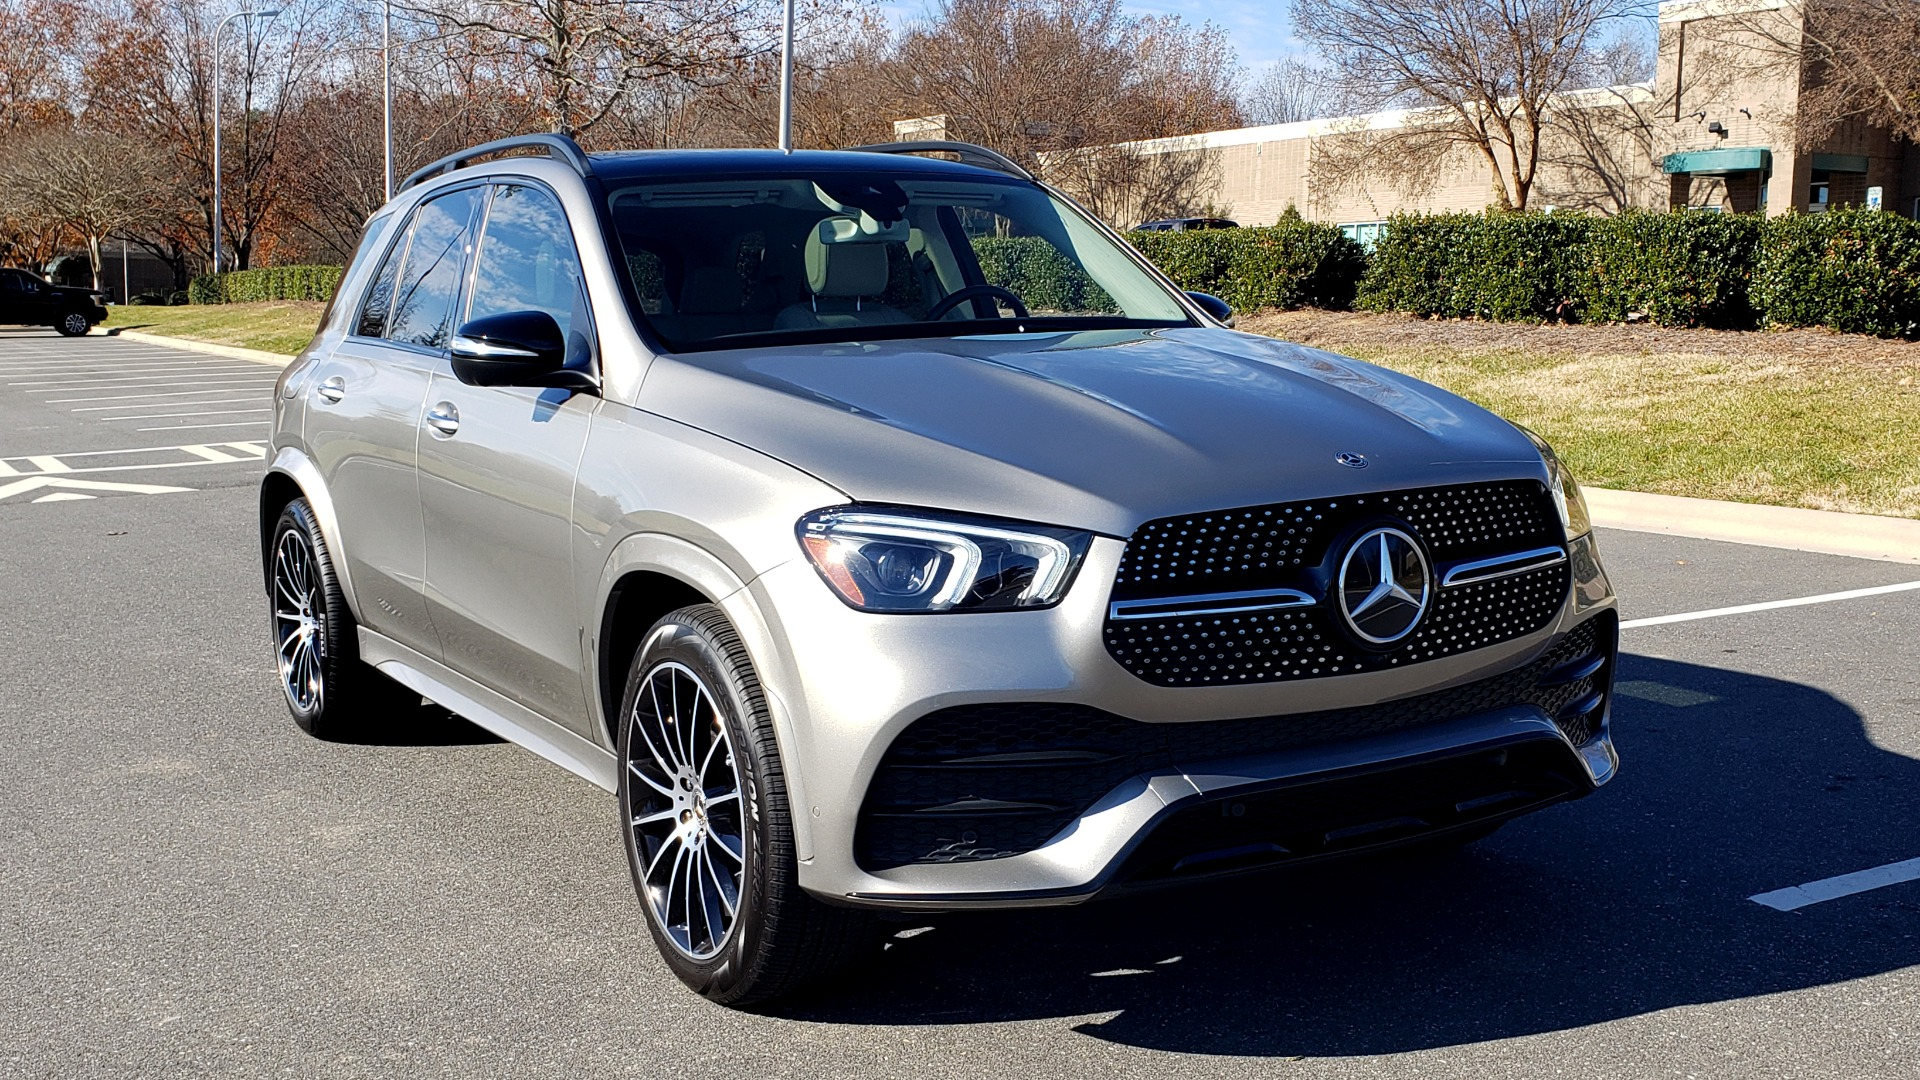 Used 2020 Mercedes-Benz GLE 350 PREMIUM / NAV / PARK ASST / NIGHT PKG / AMG LINE EXT / REARVIEW for sale Sold at Formula Imports in Charlotte NC 28227 6